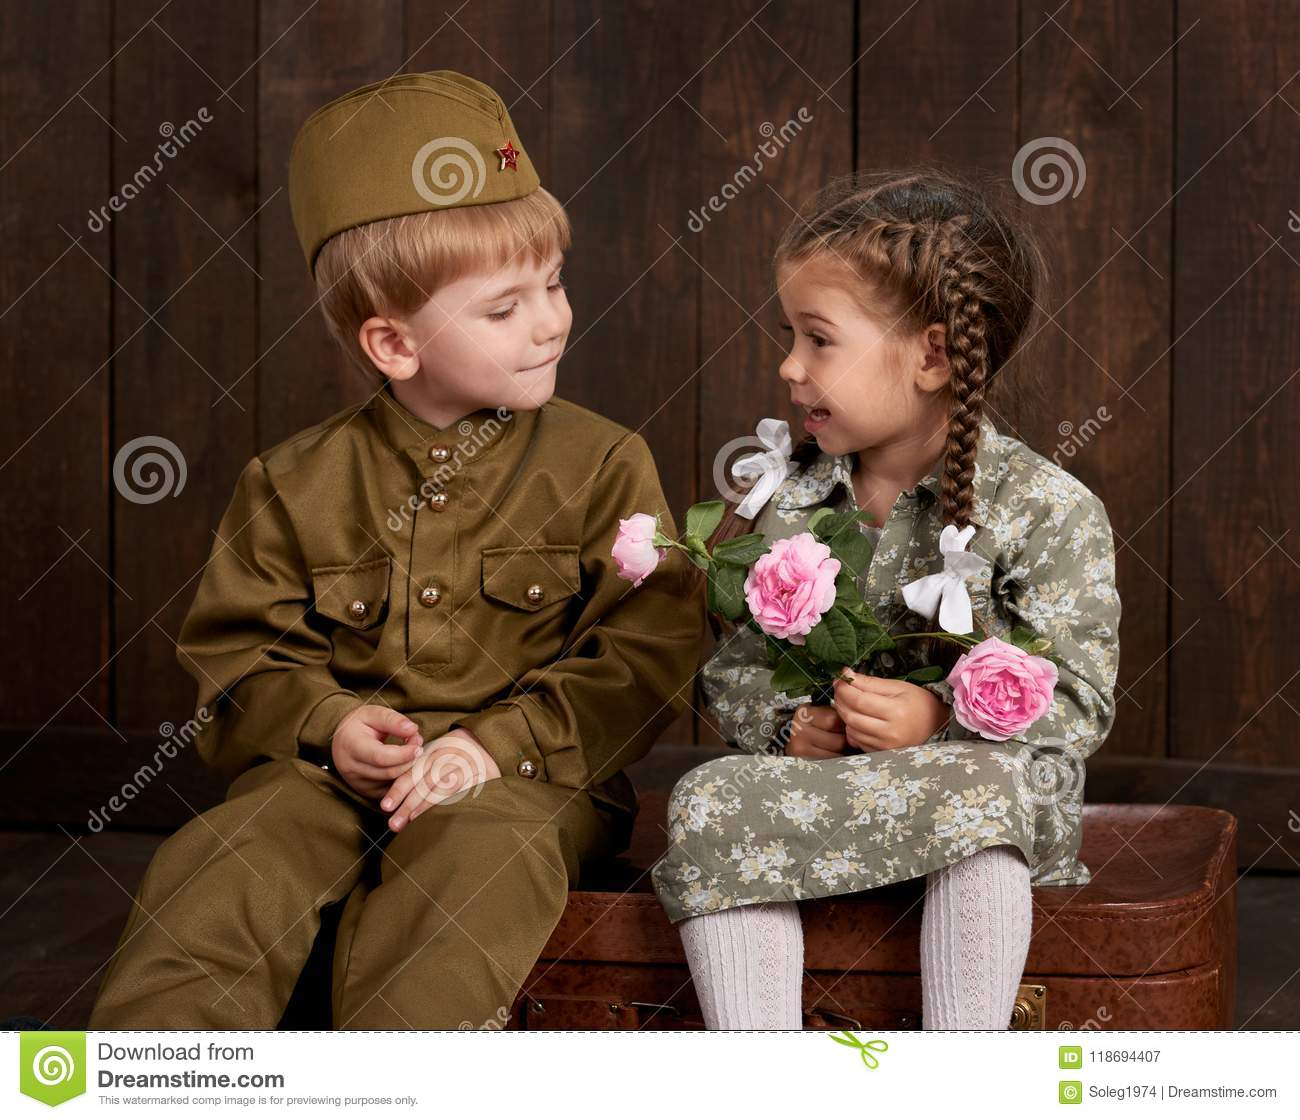 Children boy are dressed as soldier in retro military uniforms and girl in pink dress sitting on old suitcase, dark wood backgroun